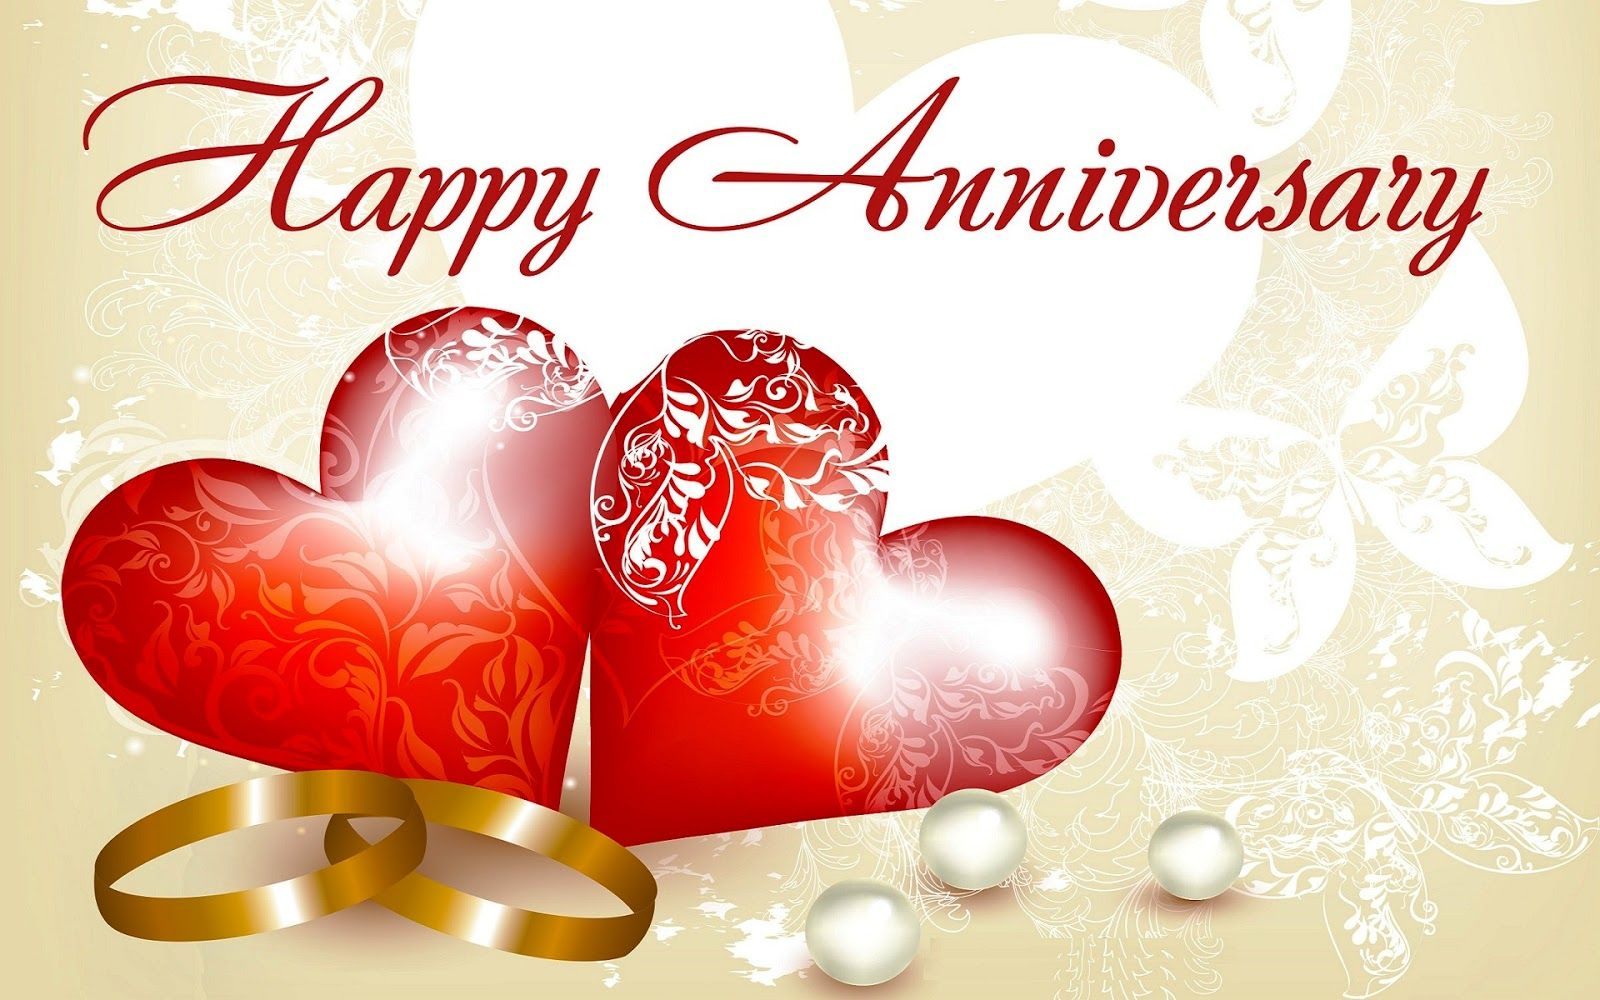 Happy Anniversary Happy anniversary wishes, Happy